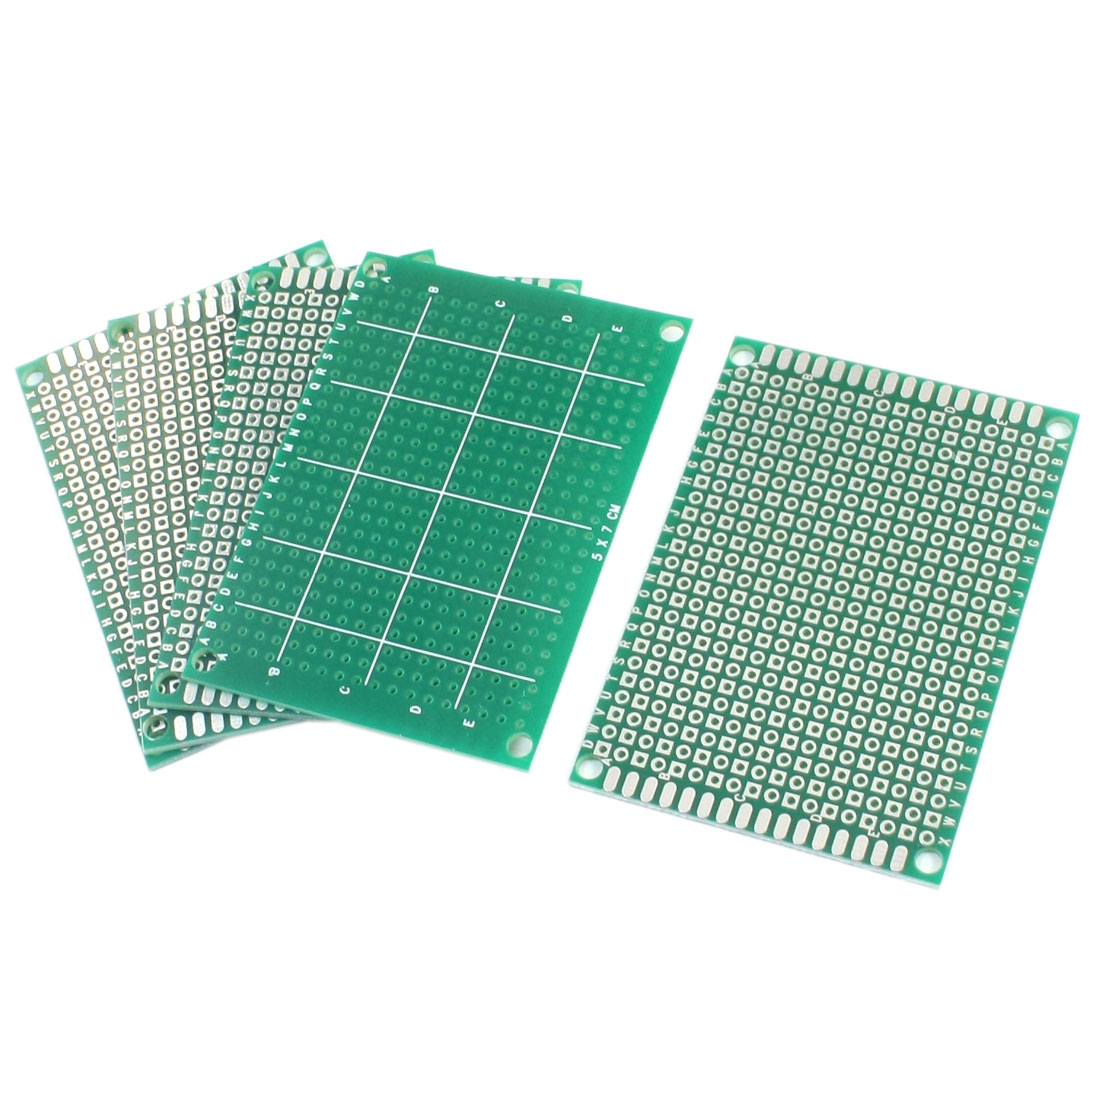 5pcs FR-4 Prototyping Experiment Tester Matrix PCB Circuit Board 5 x 7cm